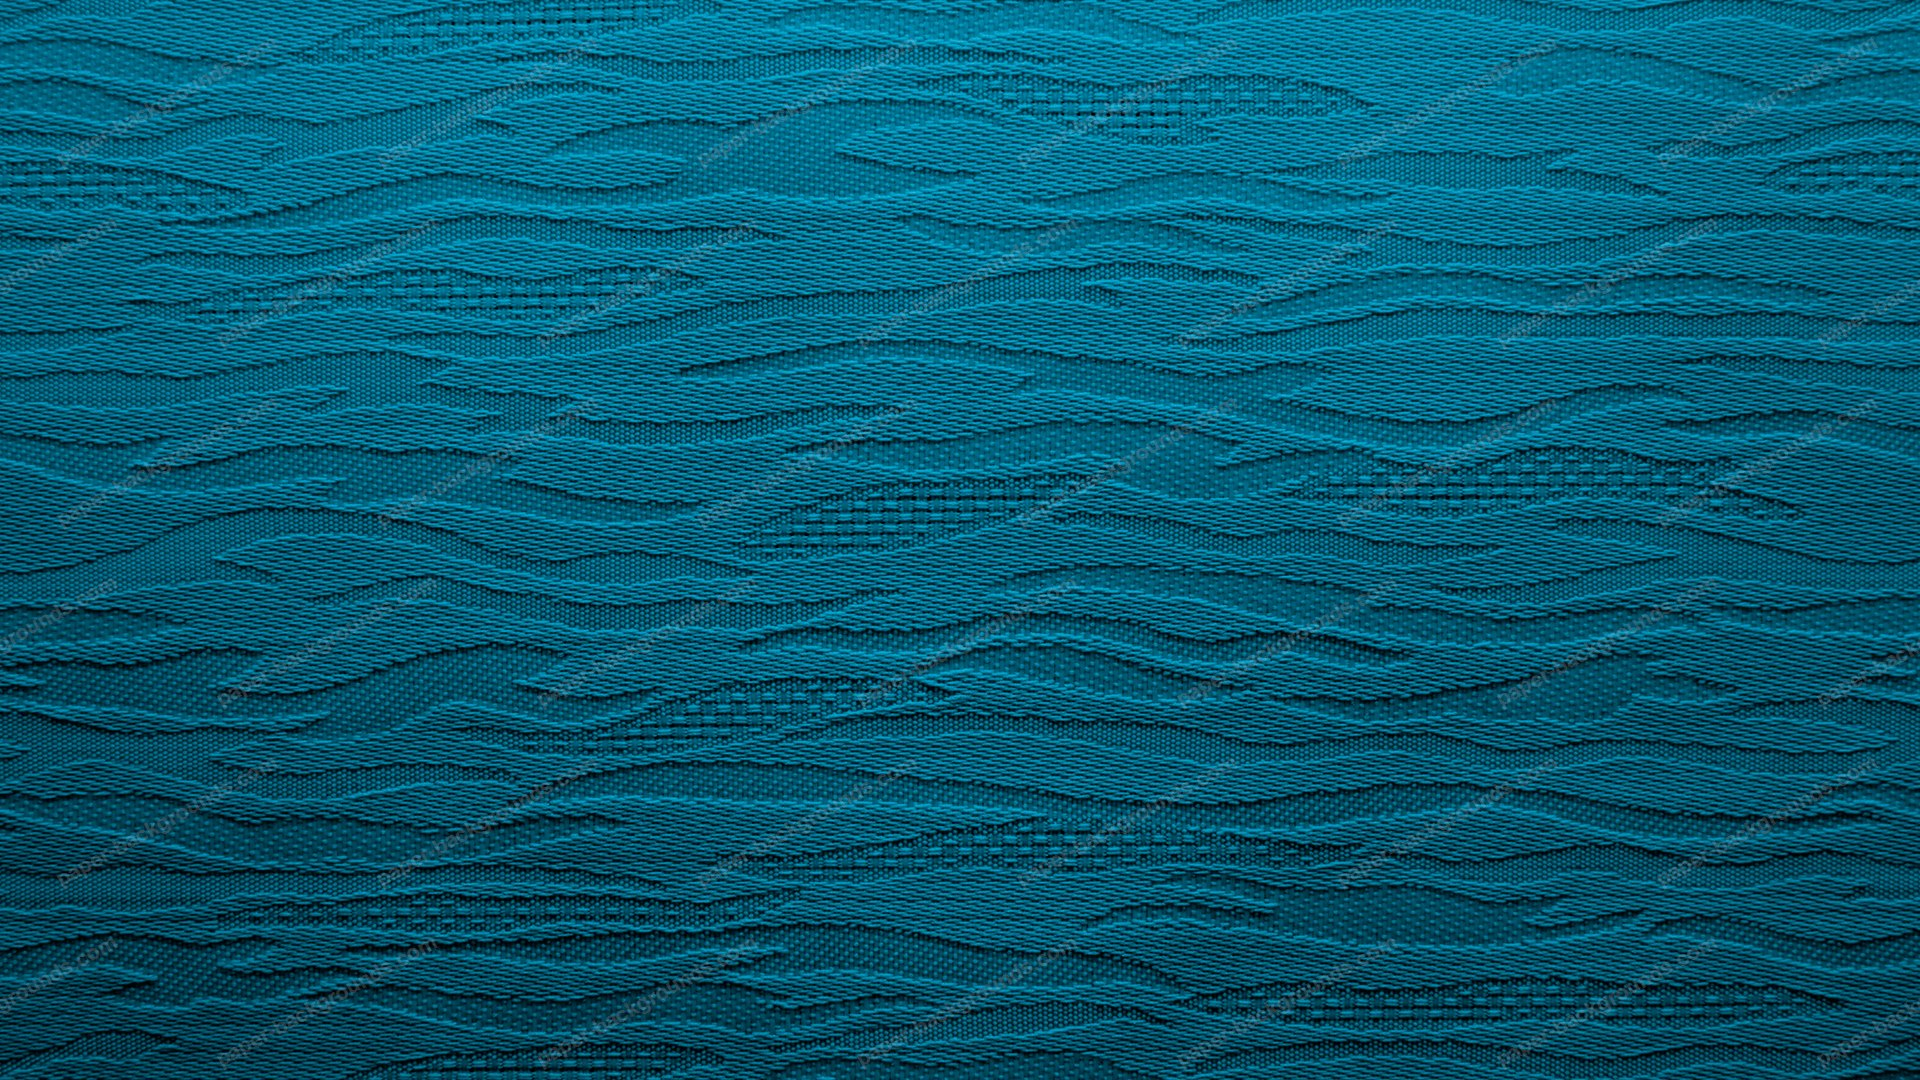 Blue Fabric Background With Waves HD 1920 x 1080p